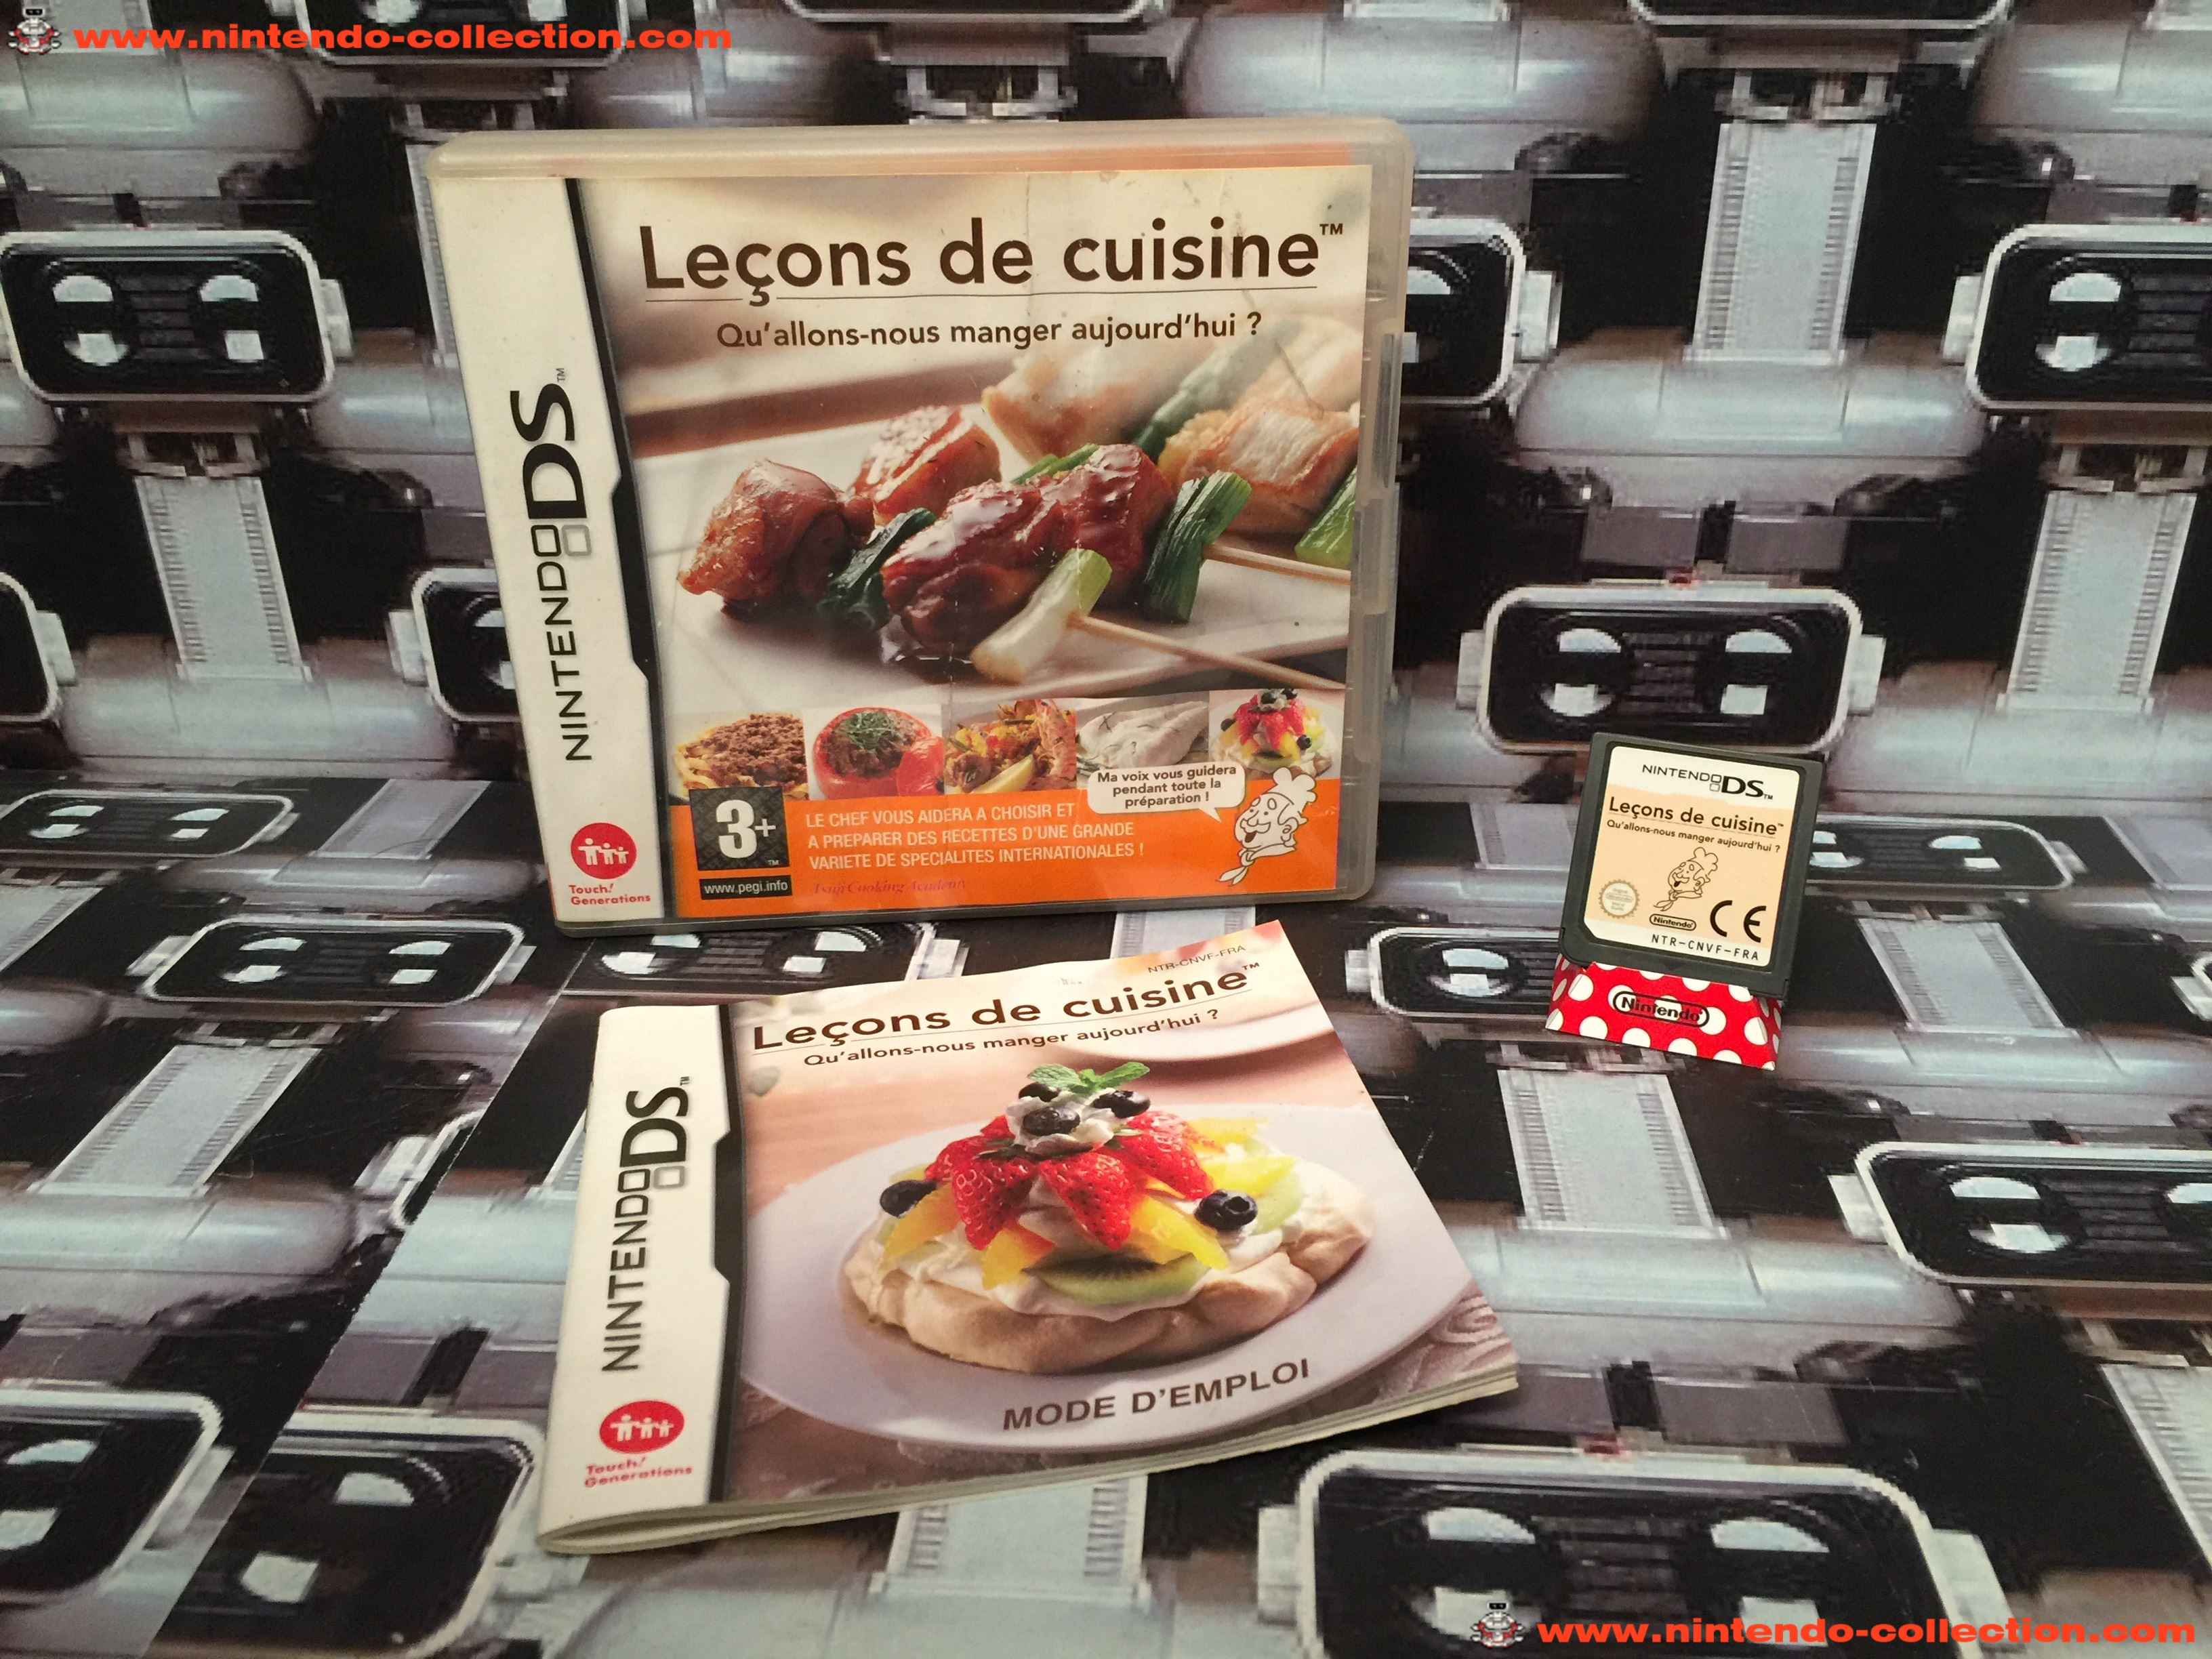 www.nintendo-collection.com - Nintendo DS Jeux Game Lecons de cuisine Euro Fr